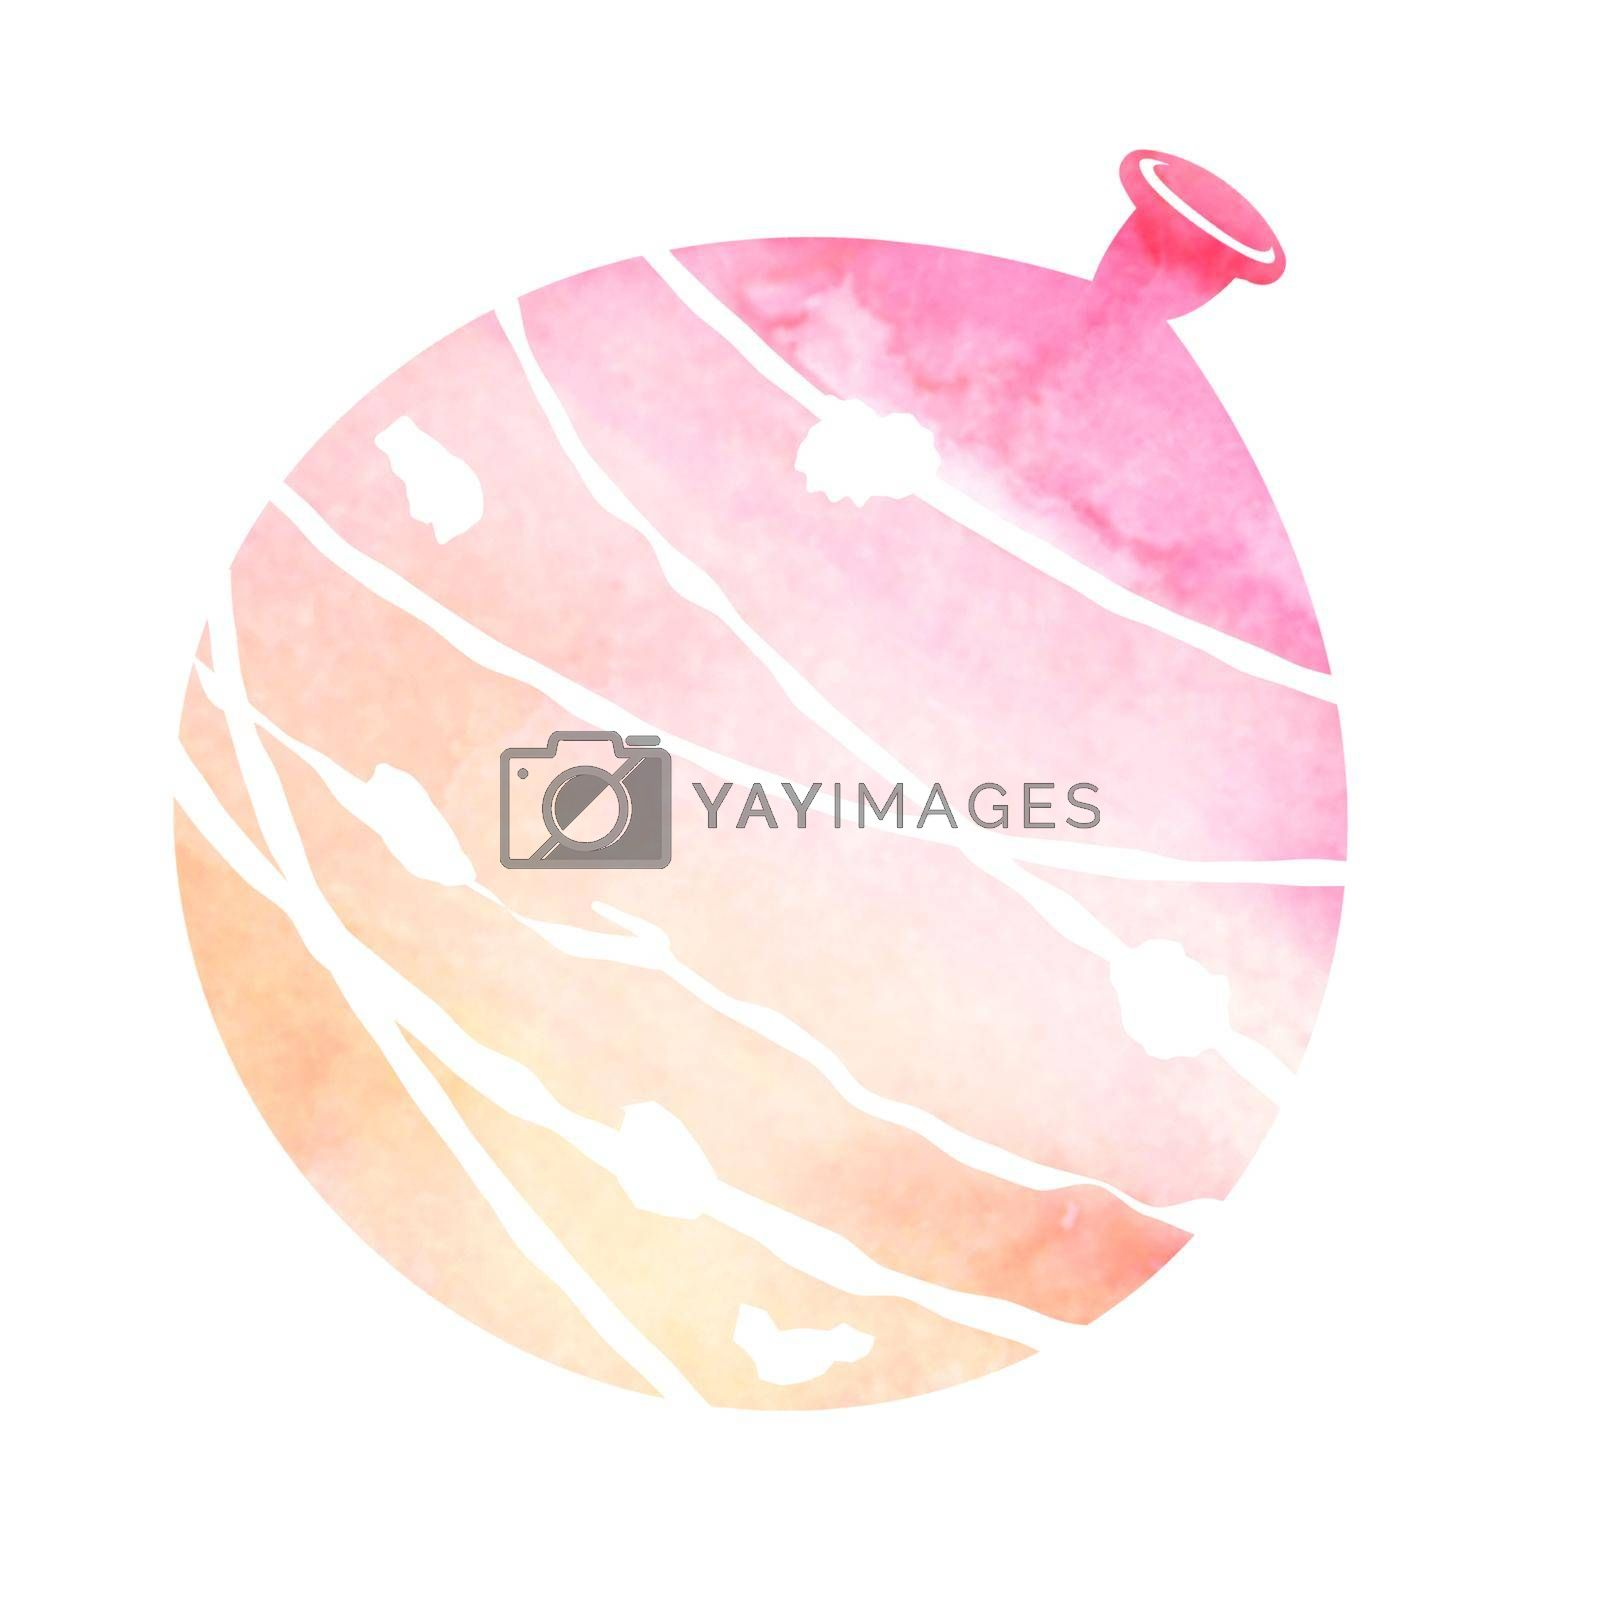 Royalty free image of Summer motif watercolor painting illustration for summer greeting card etc.   water balloon by barks